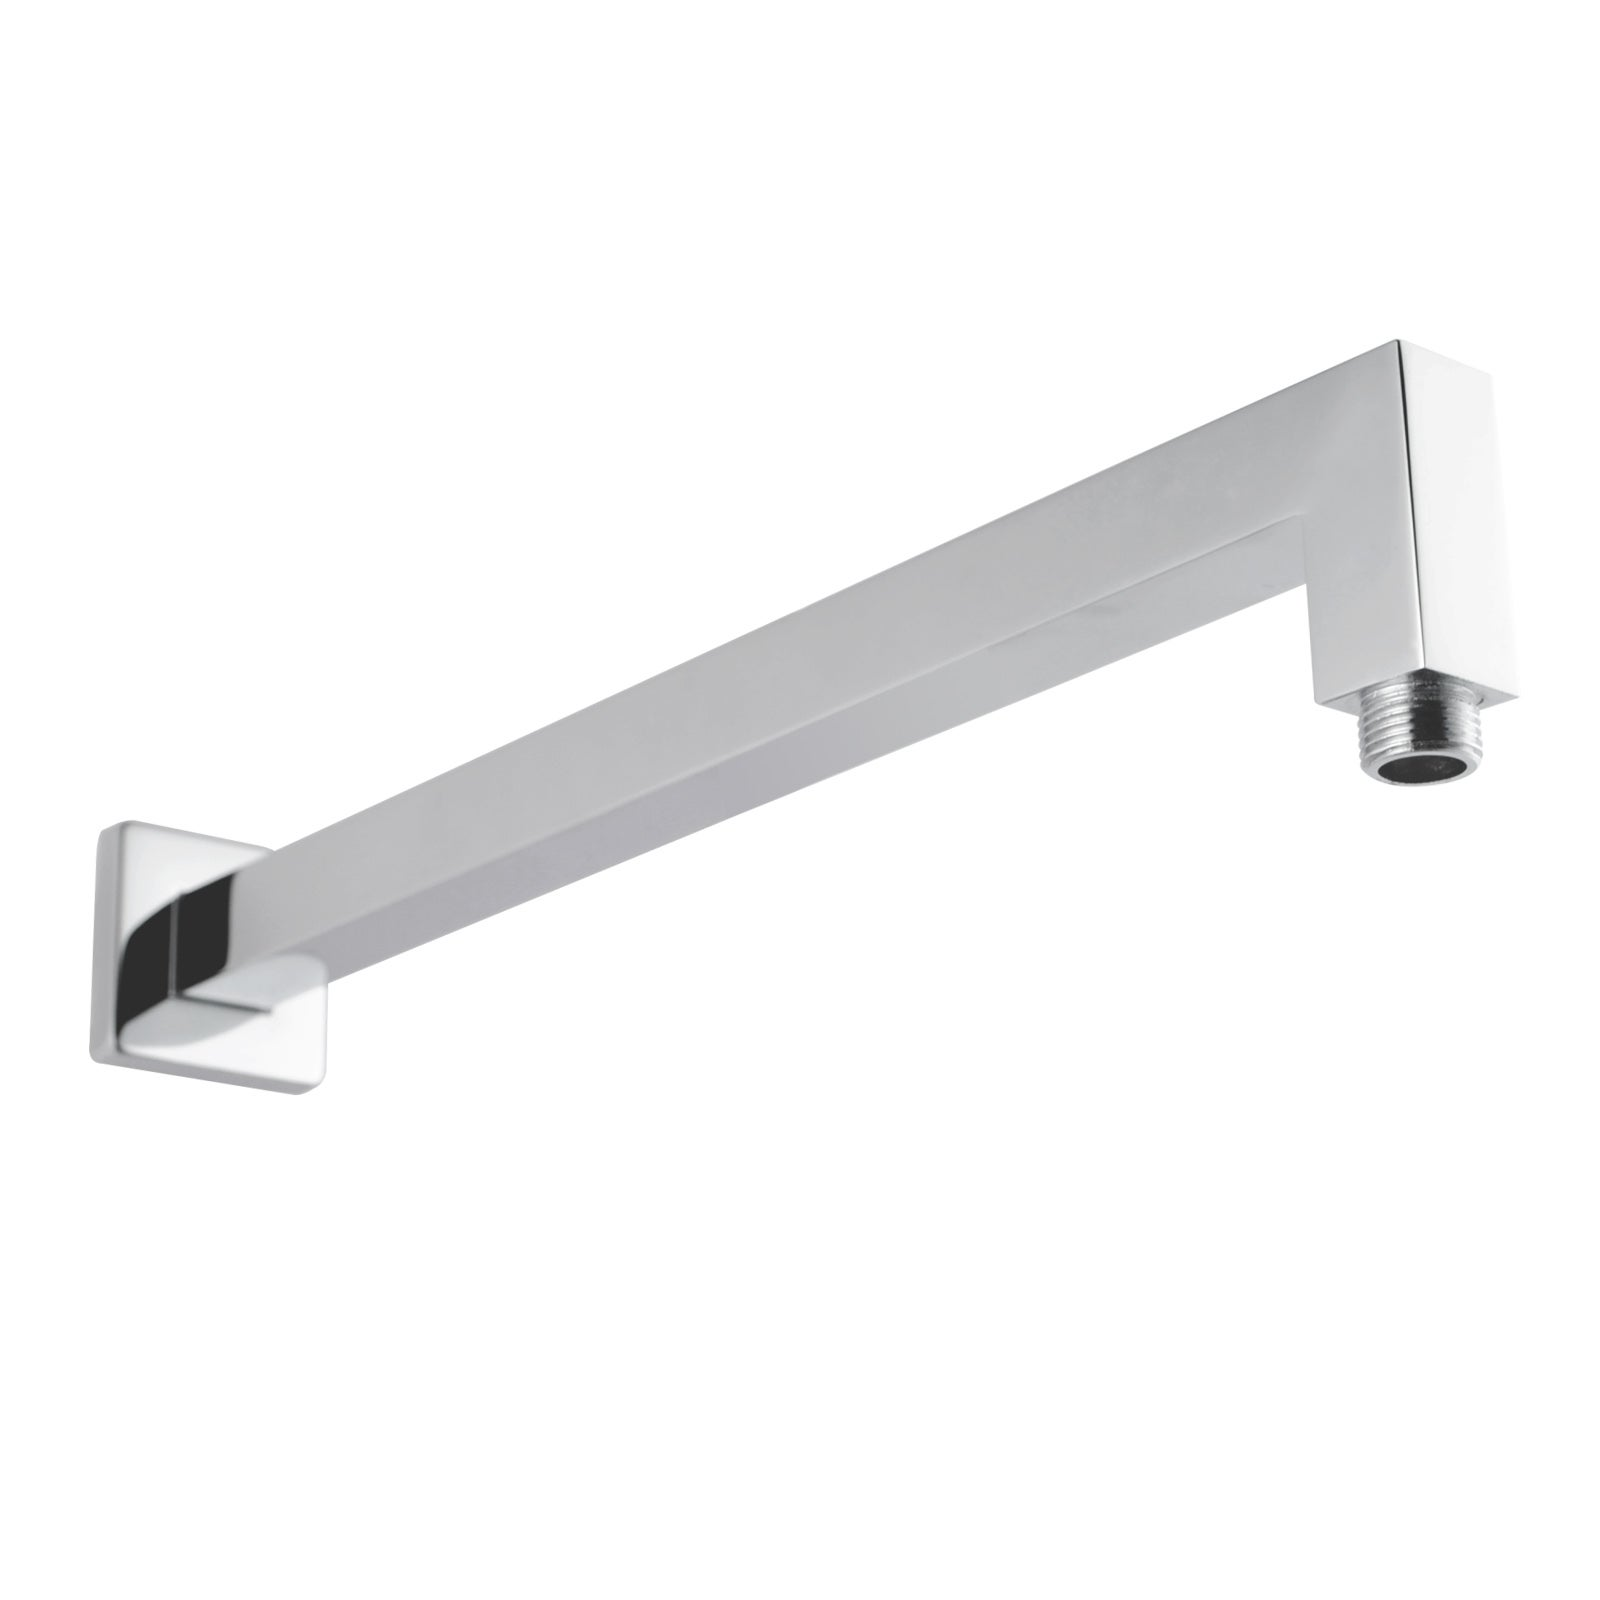 Female End Square Wall Shower Arm Straight 400mm